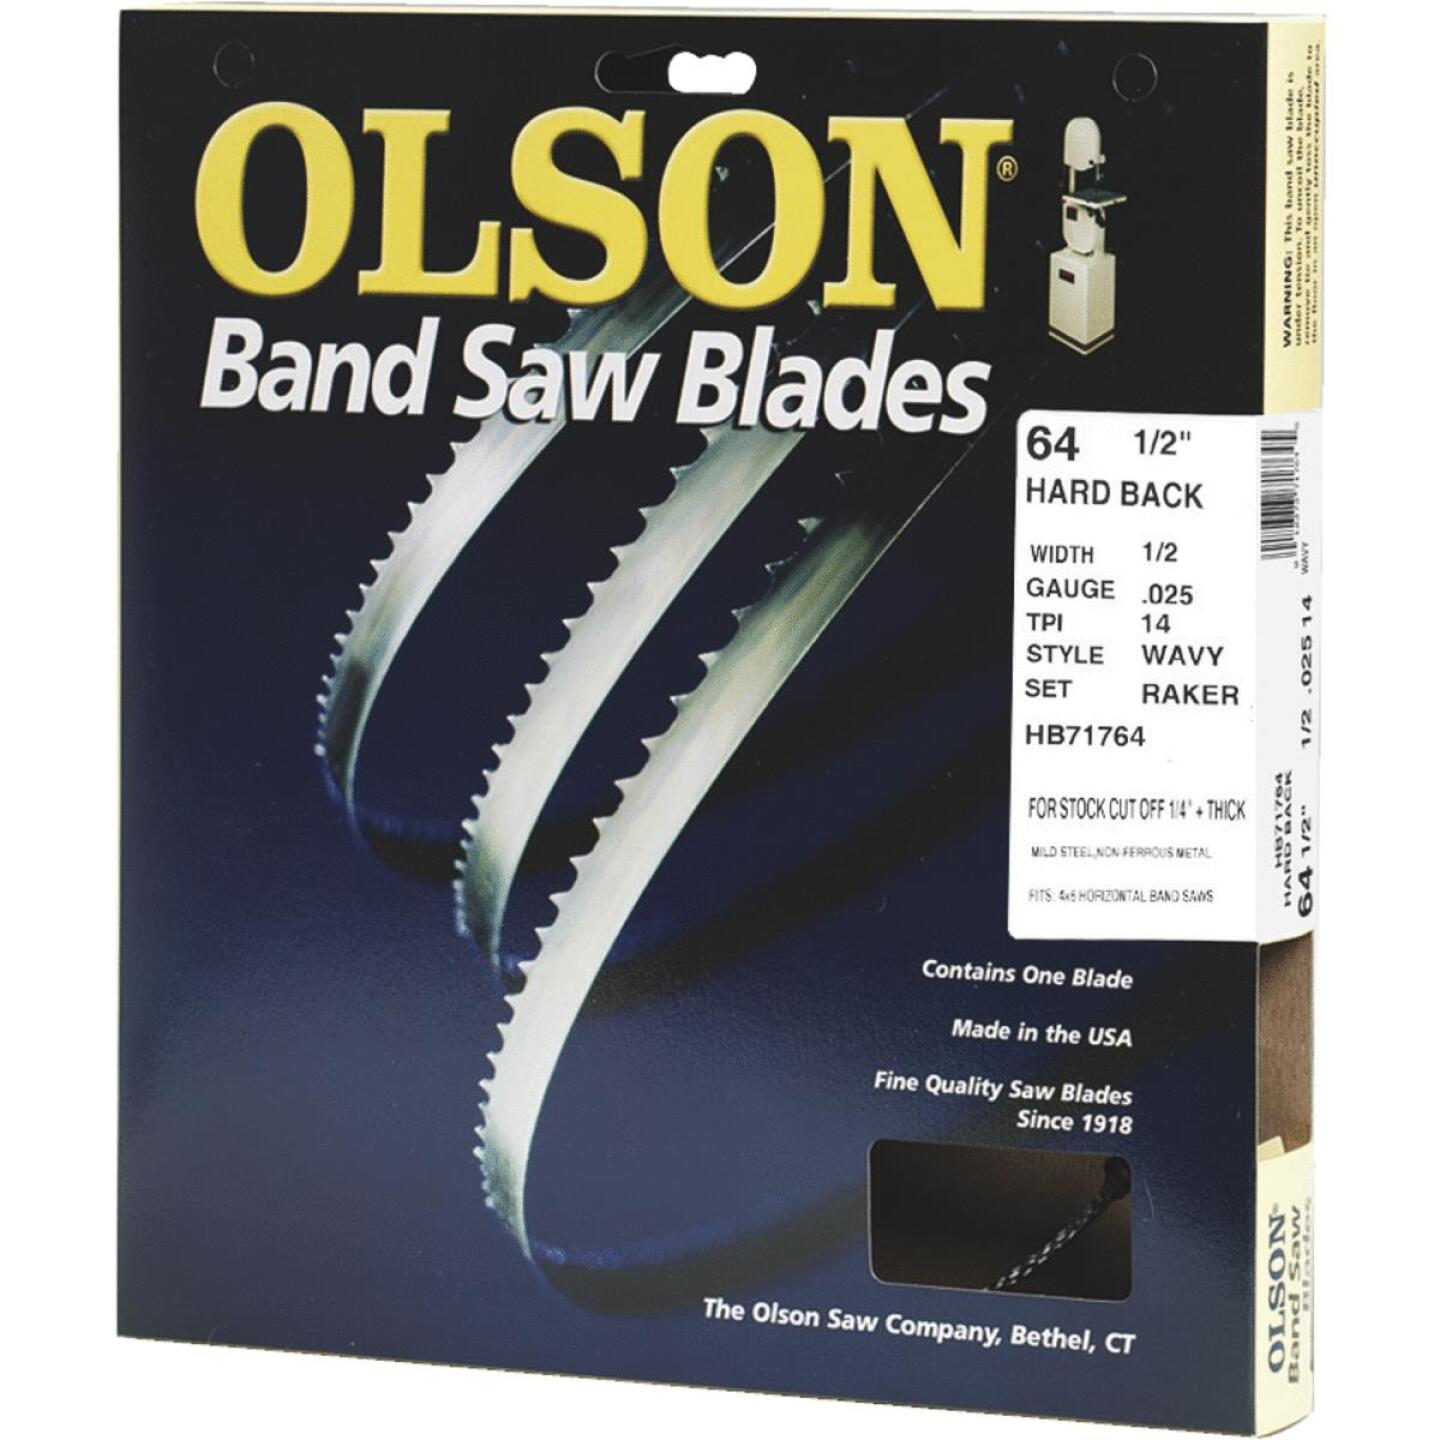 Olson 64-1/2 In. x 1/2 In. 14 TPI Wavy Hard Back Metal Cutting Band Saw Blade Image 1